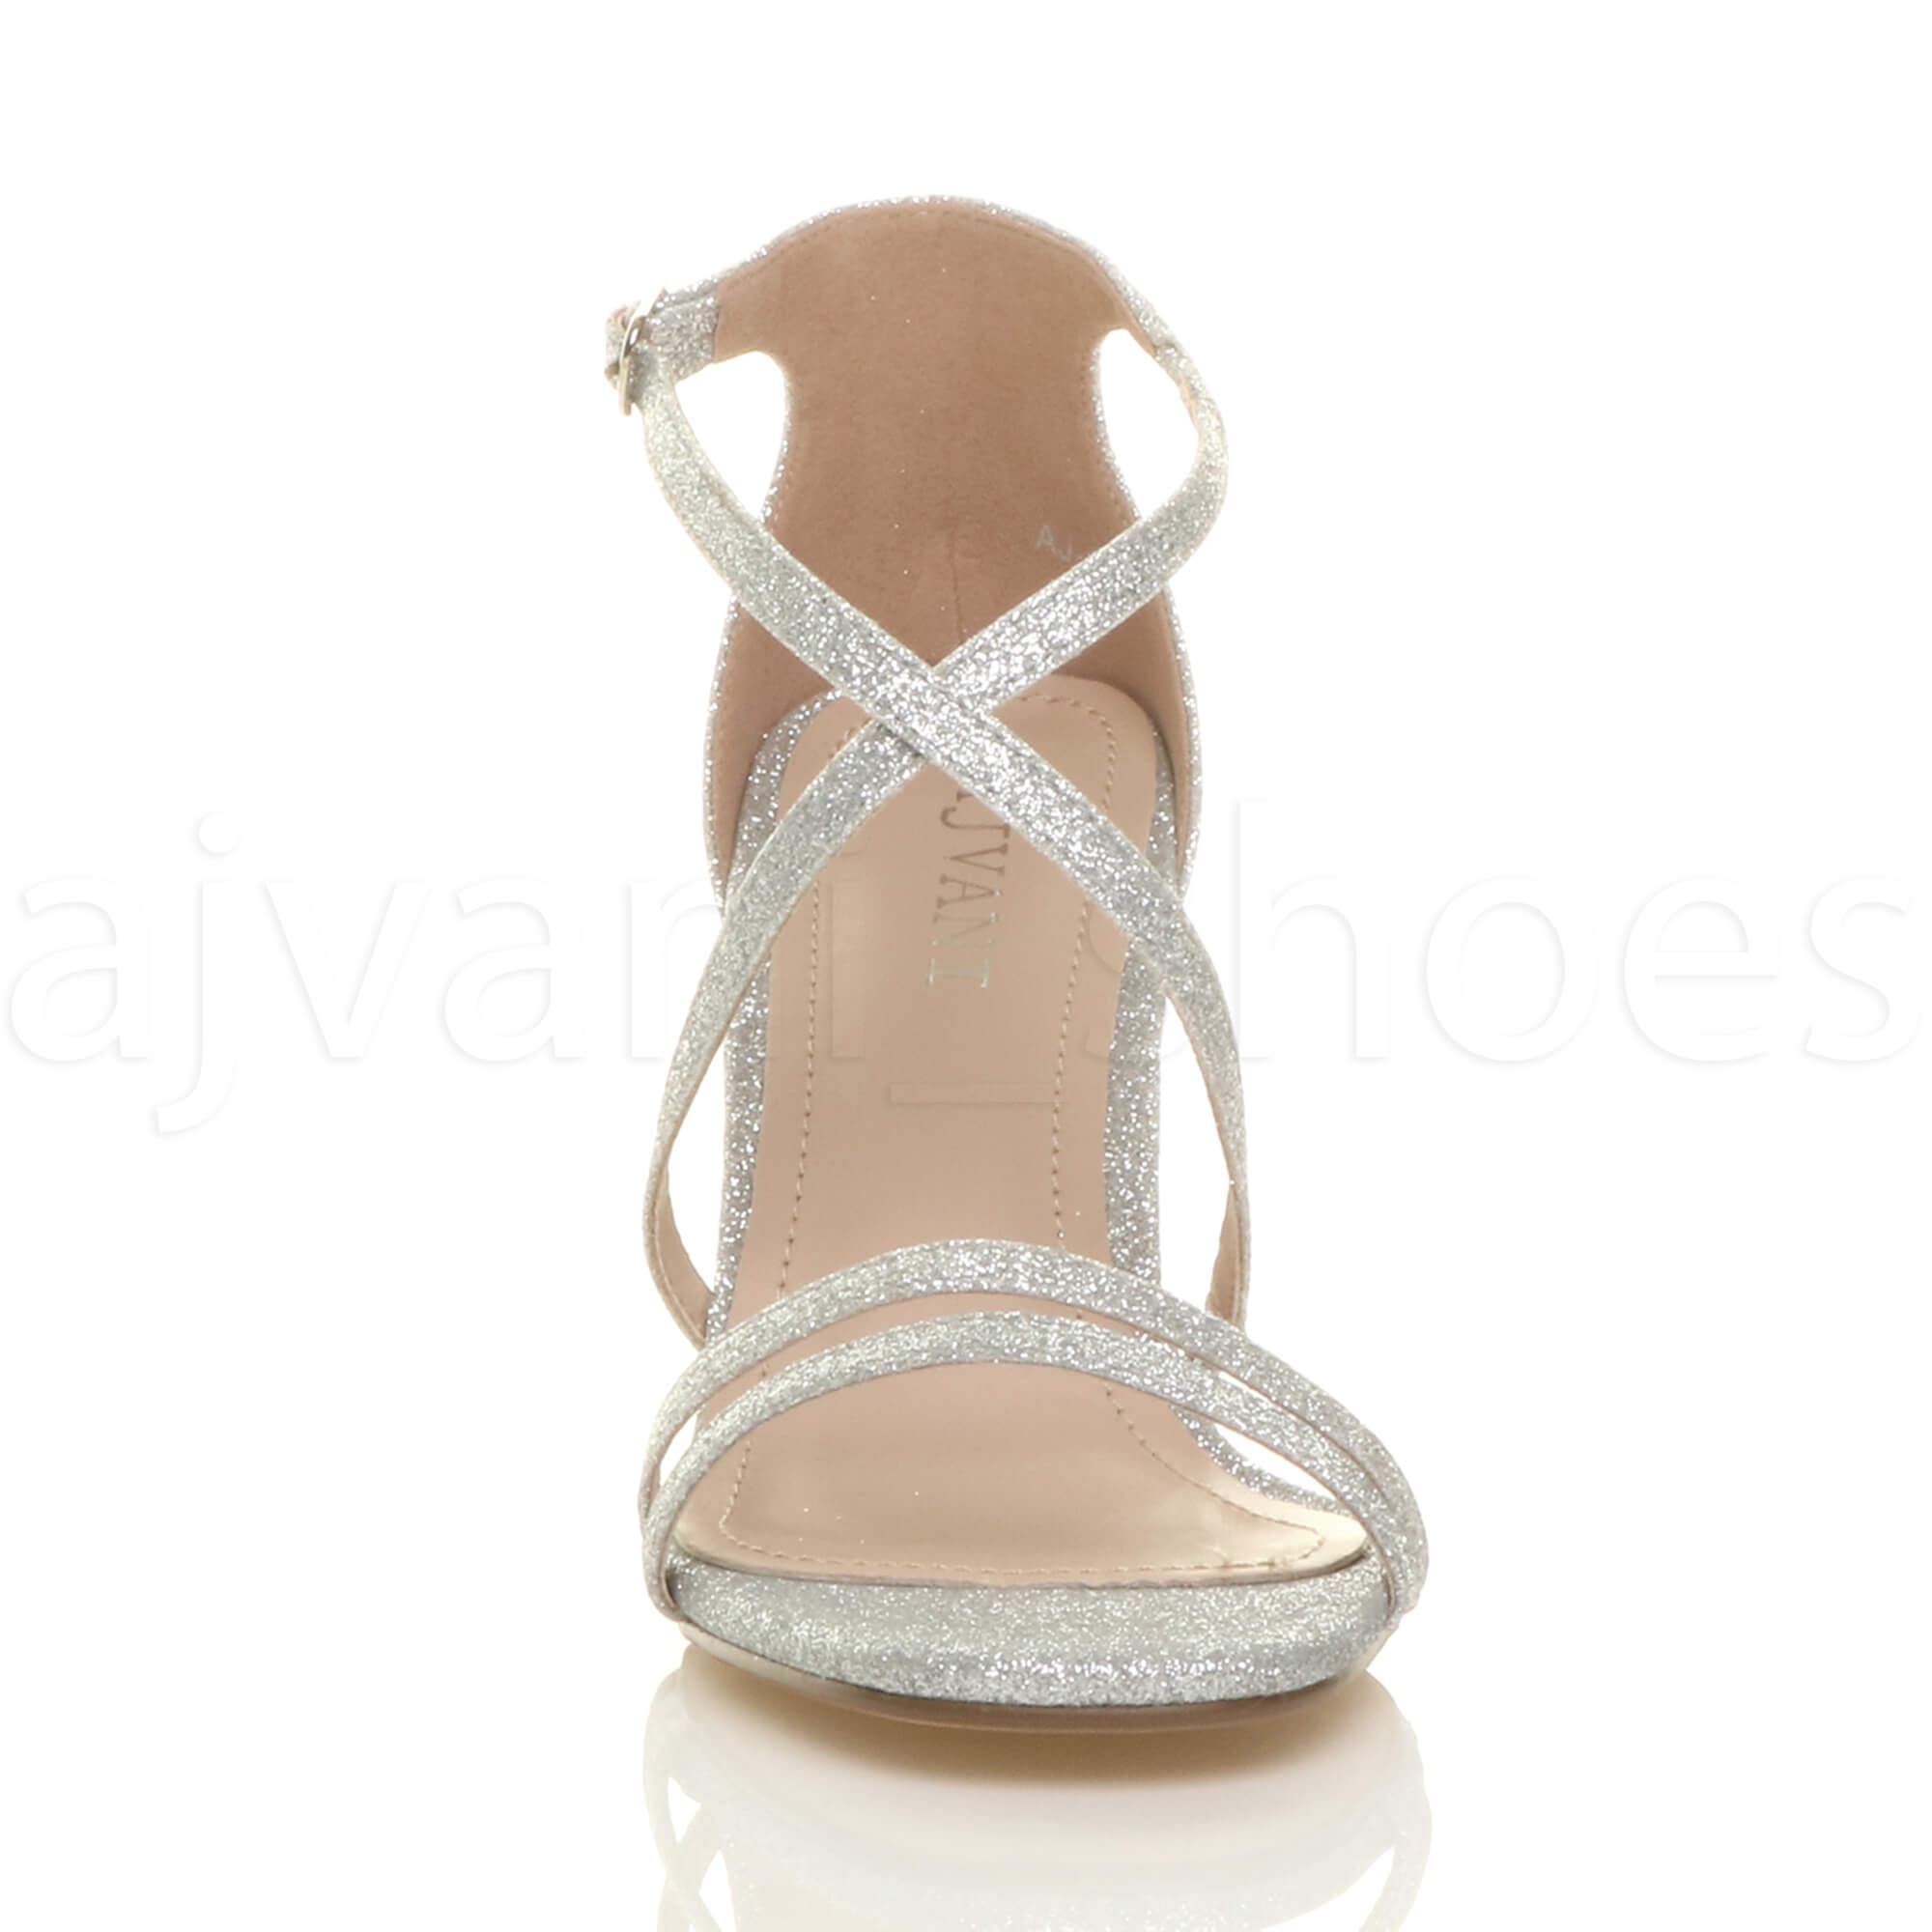 WOMENS-LADIES-MID-HIGH-HEEL-STRAPPY-CROSSOVER-WEDDING-PROM-SANDALS-SHOES-SIZE thumbnail 146